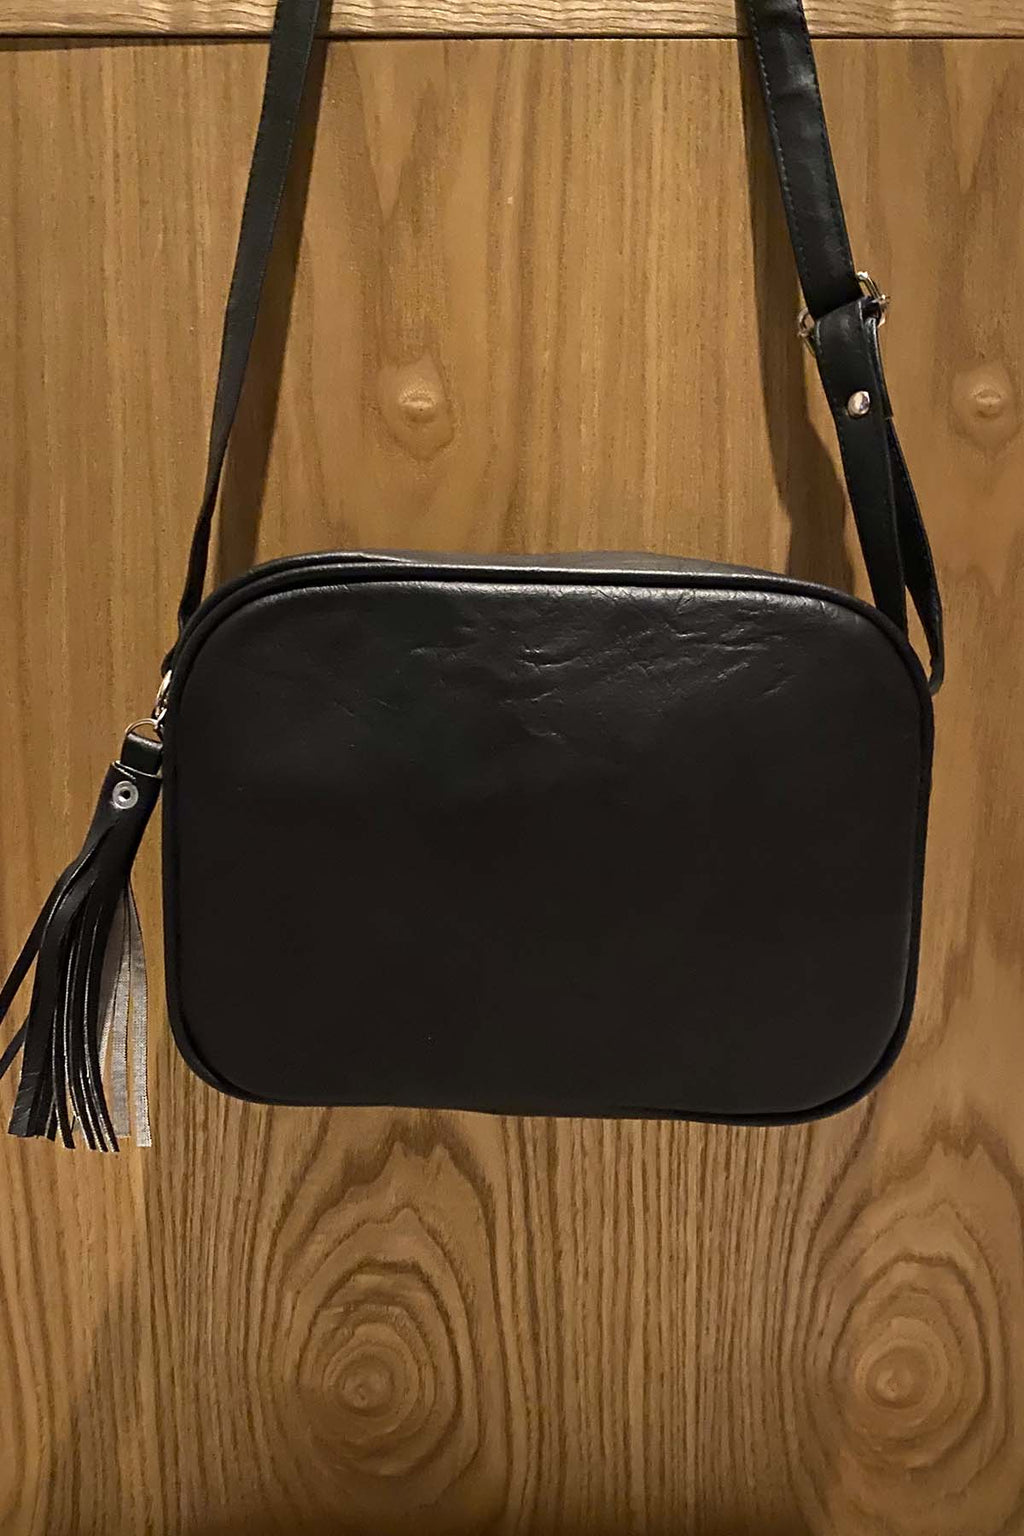 Carina Bag - Distressed Black - The Bohemian Corner